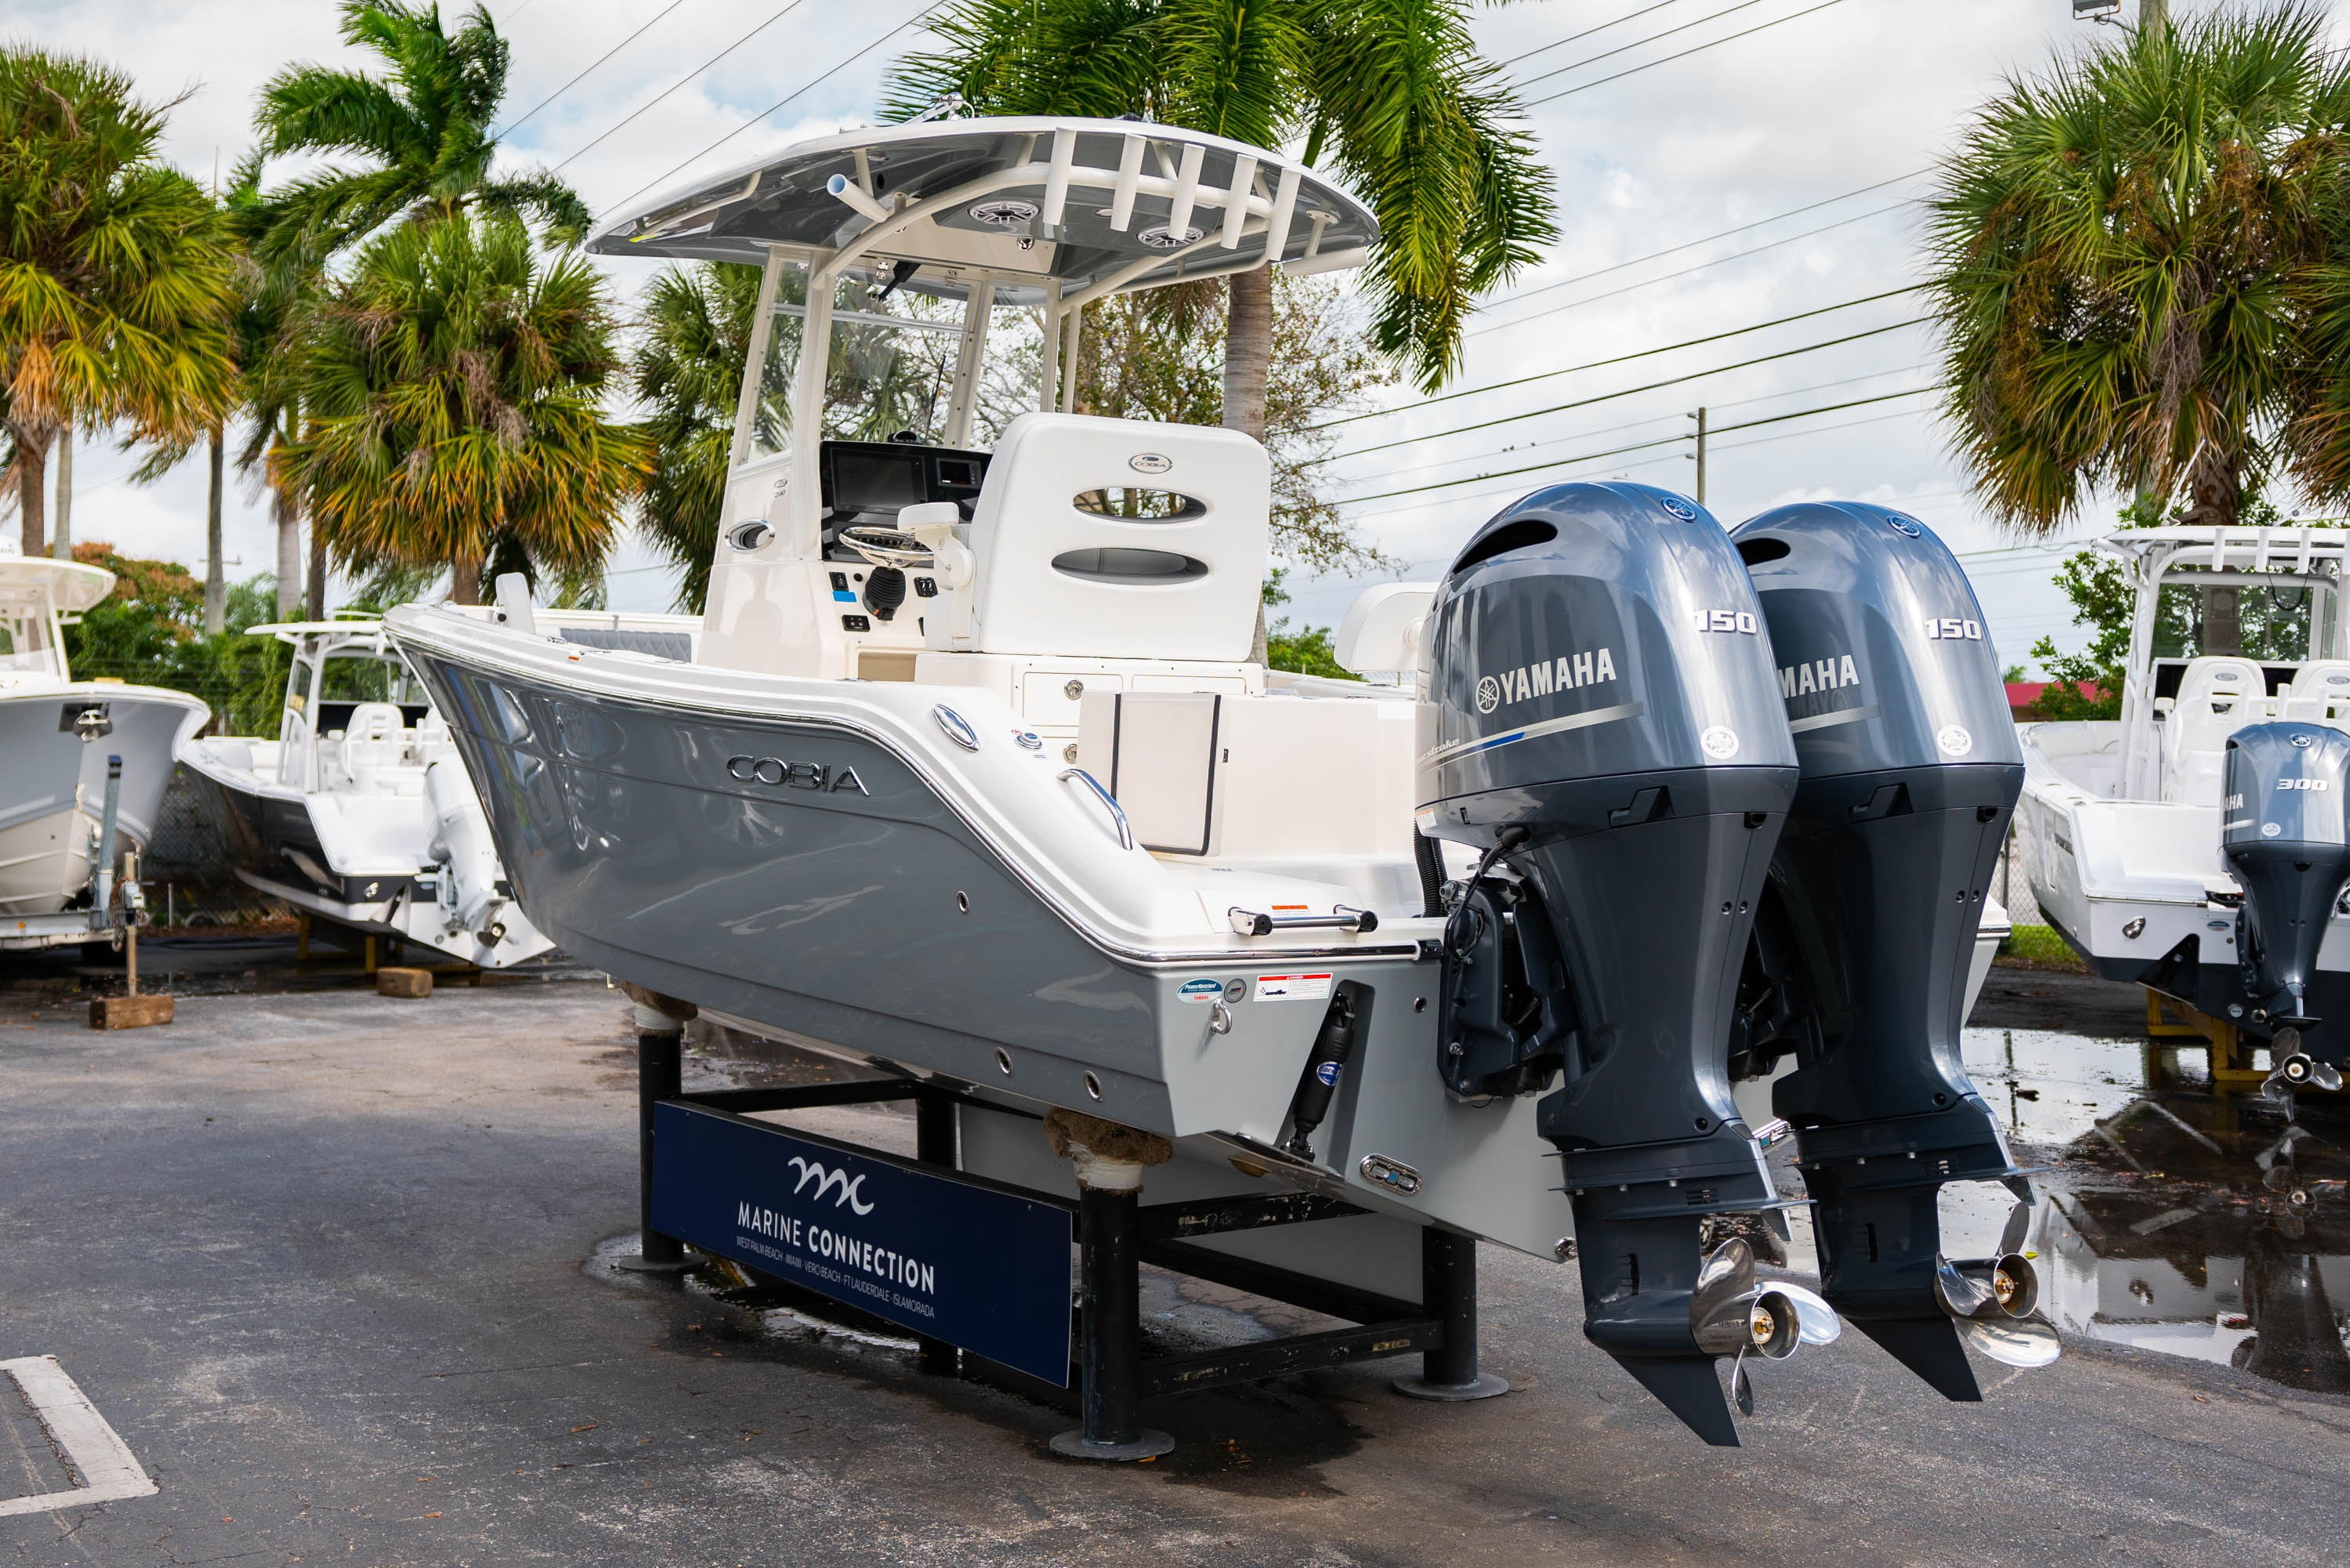 Thumbnail 5 for New 2020 Cobia 240 CC Center Console boat for sale in West Palm Beach, FL